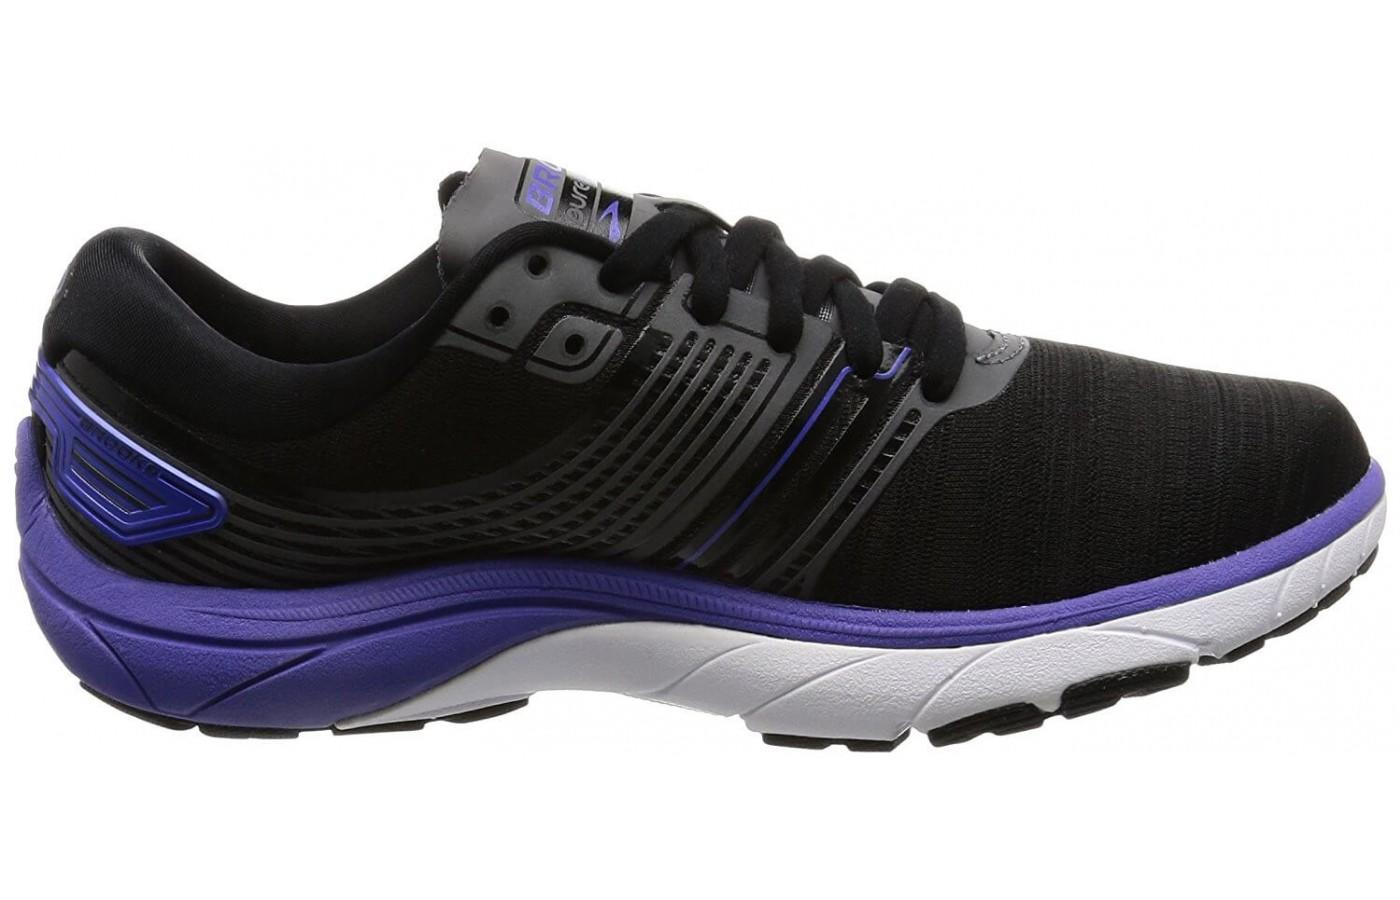 Brooks PureCadence 6 is a lightweight stability shoe